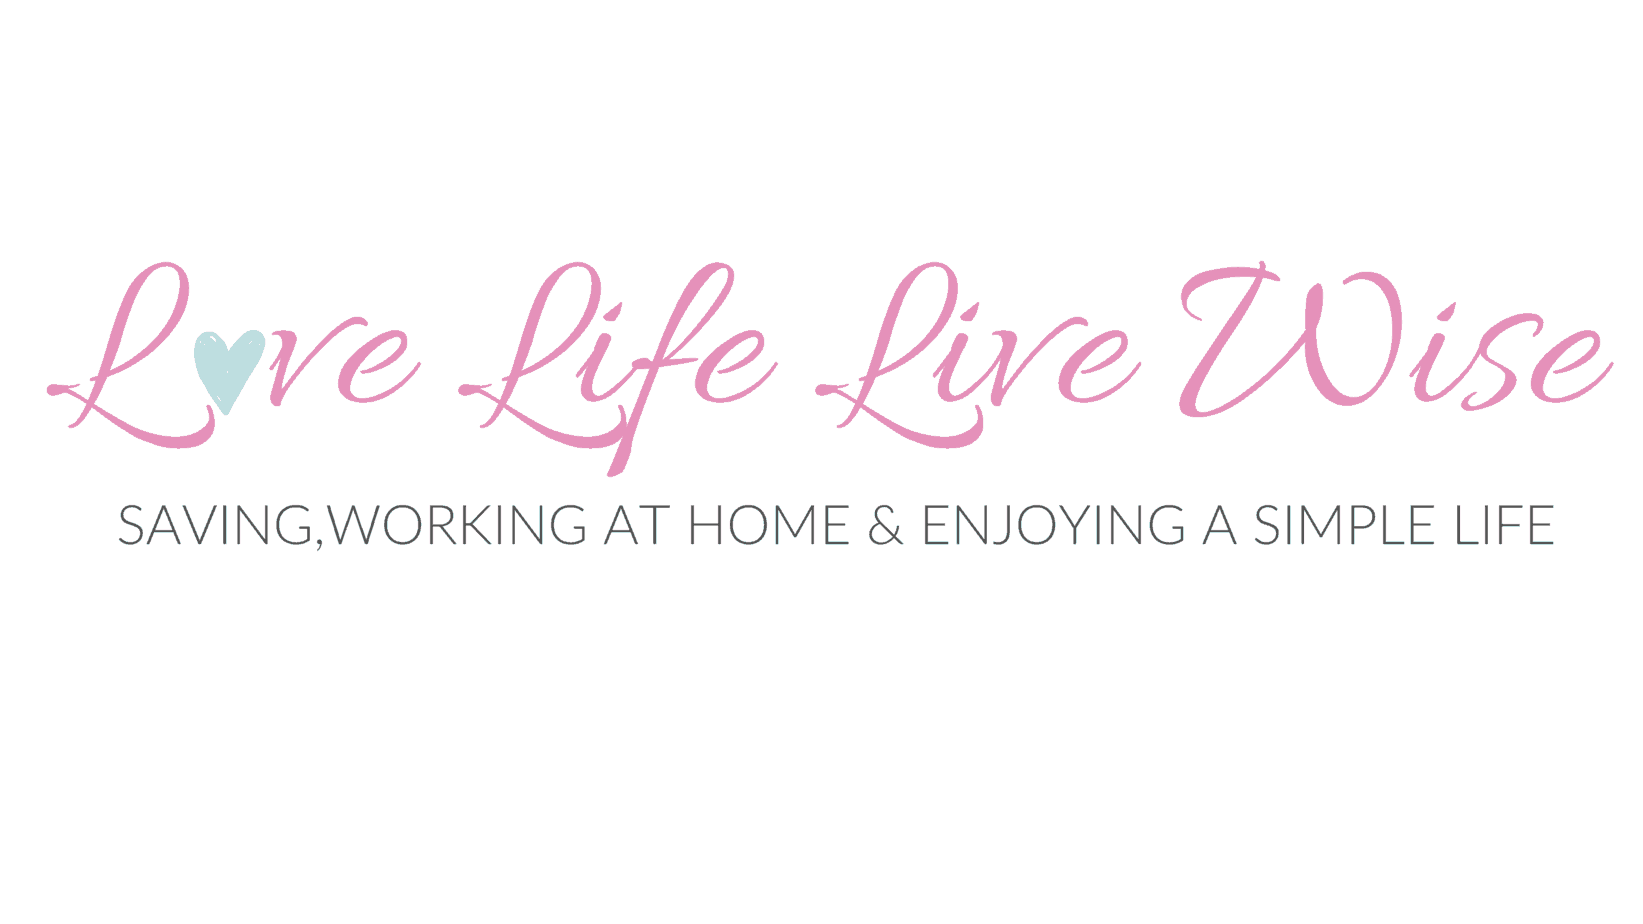 Love life live wise - main site logo